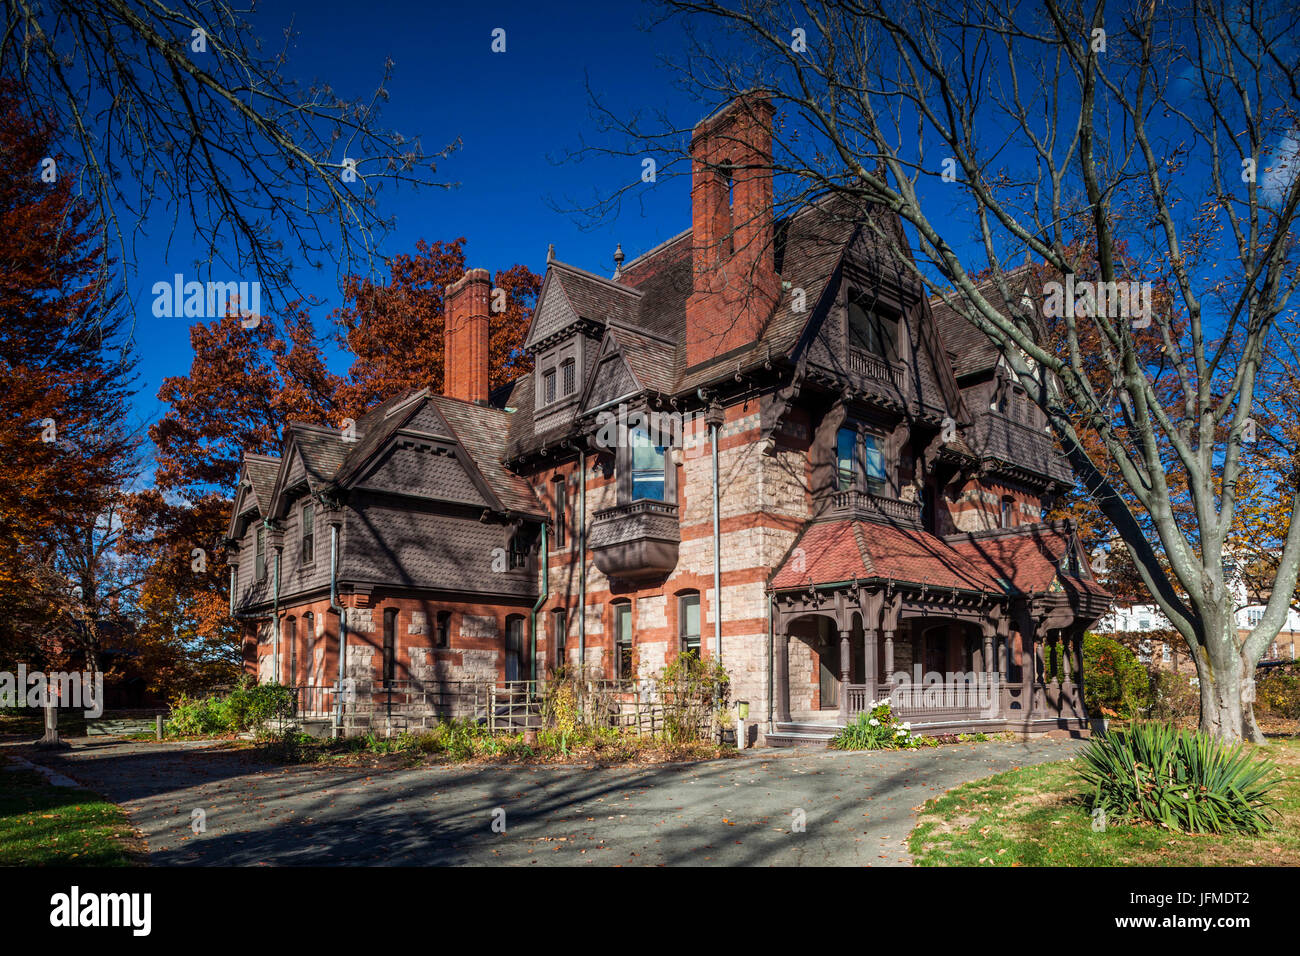 USA, Connecticut, Hartford, Katharine Seymour Day House, former home of Connecticut Historical Preservationist responsible - Stock Image